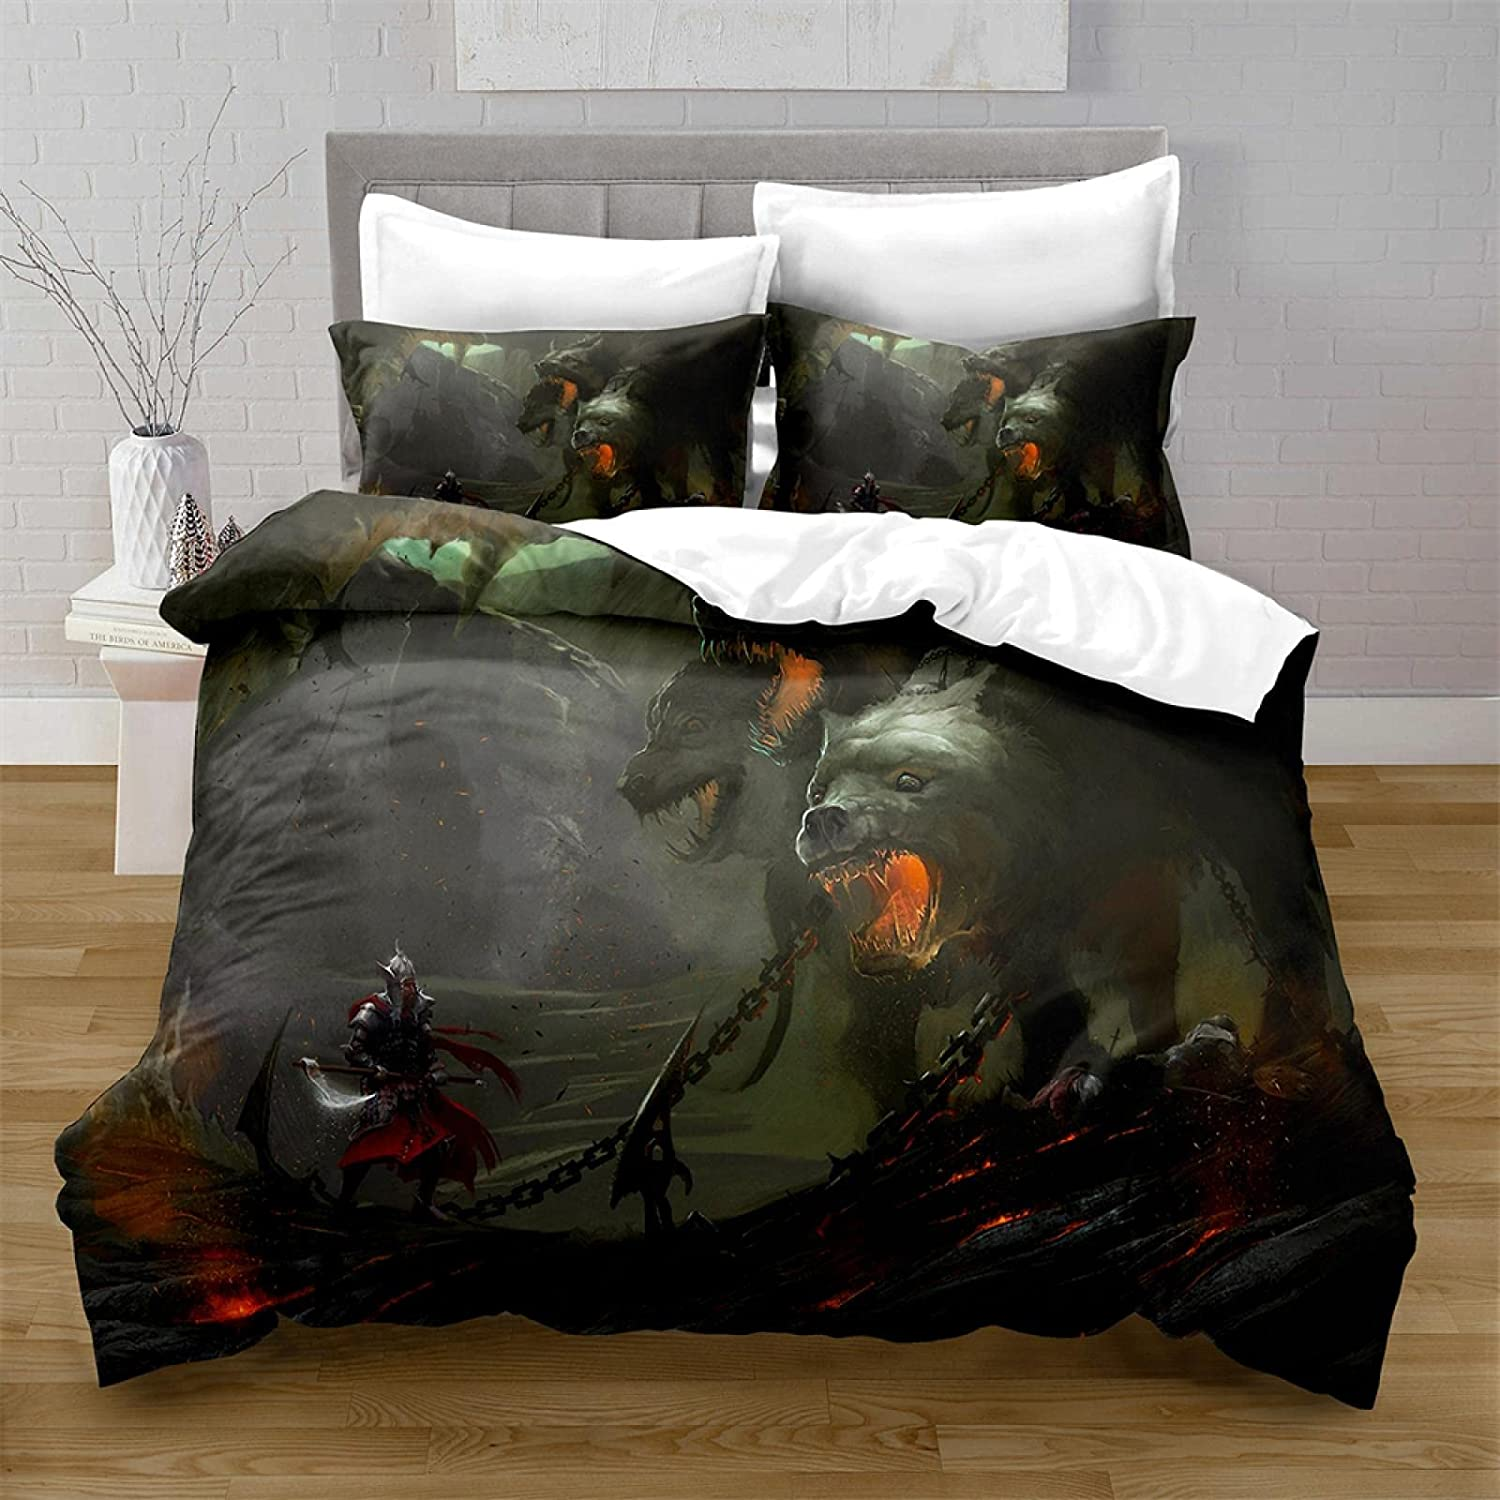 HQHM Duvet Cover Online limited product King 3 Pieces Character Horror Wolf 25% OFF 94X1 Animal